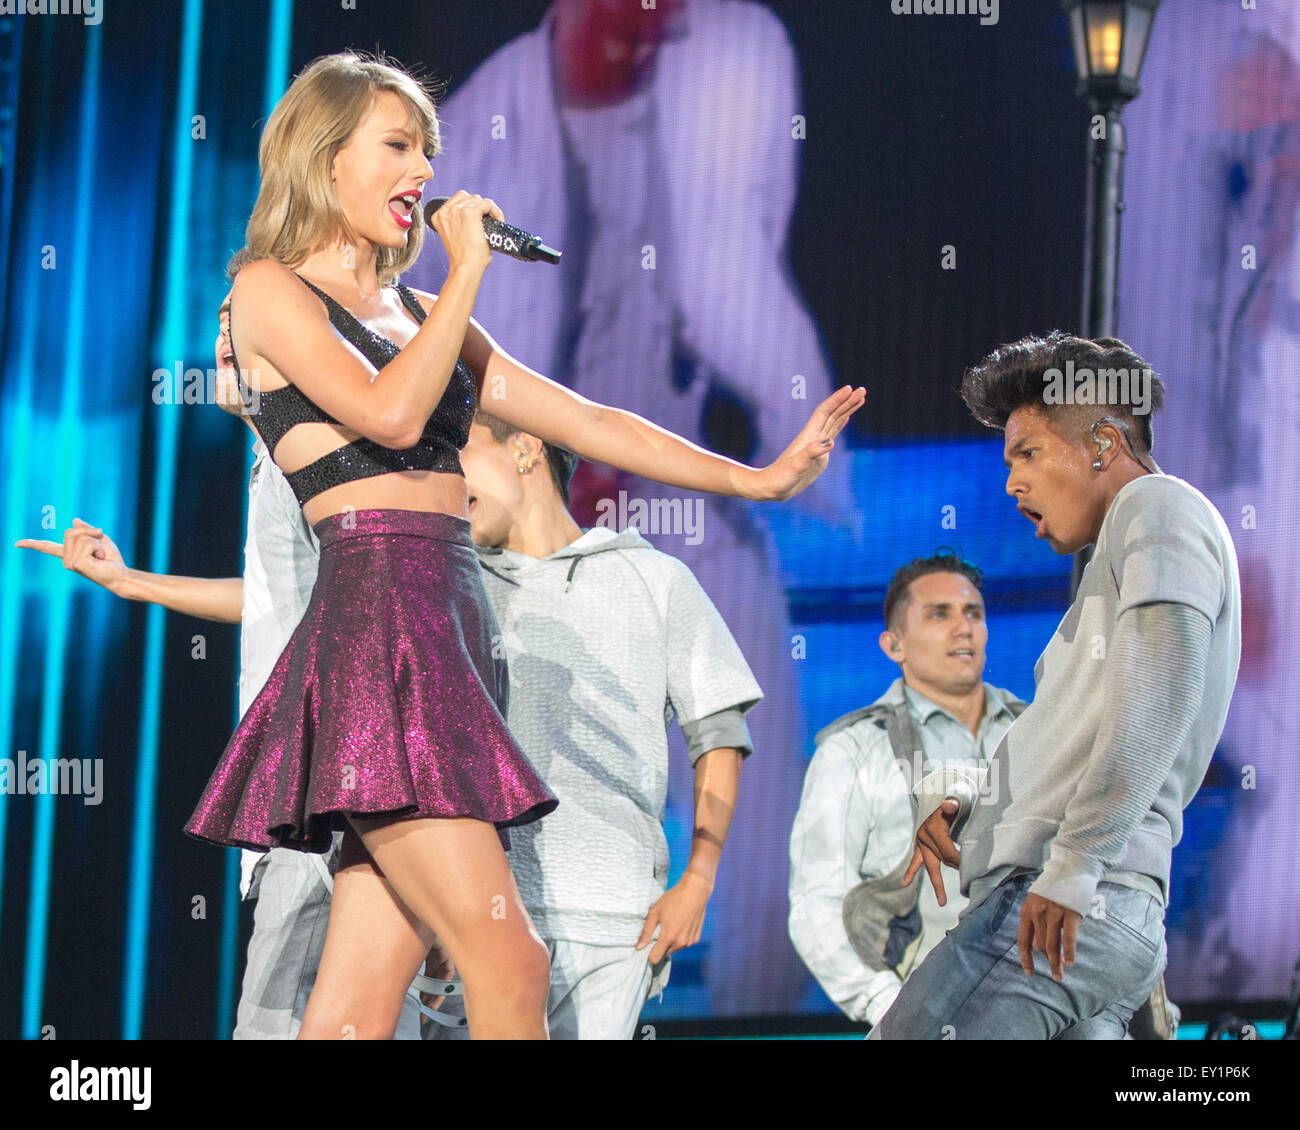 Chicago Illinois Usa 19th July 2015 Singer Taylor Swift Performs Stock Photo Alamy